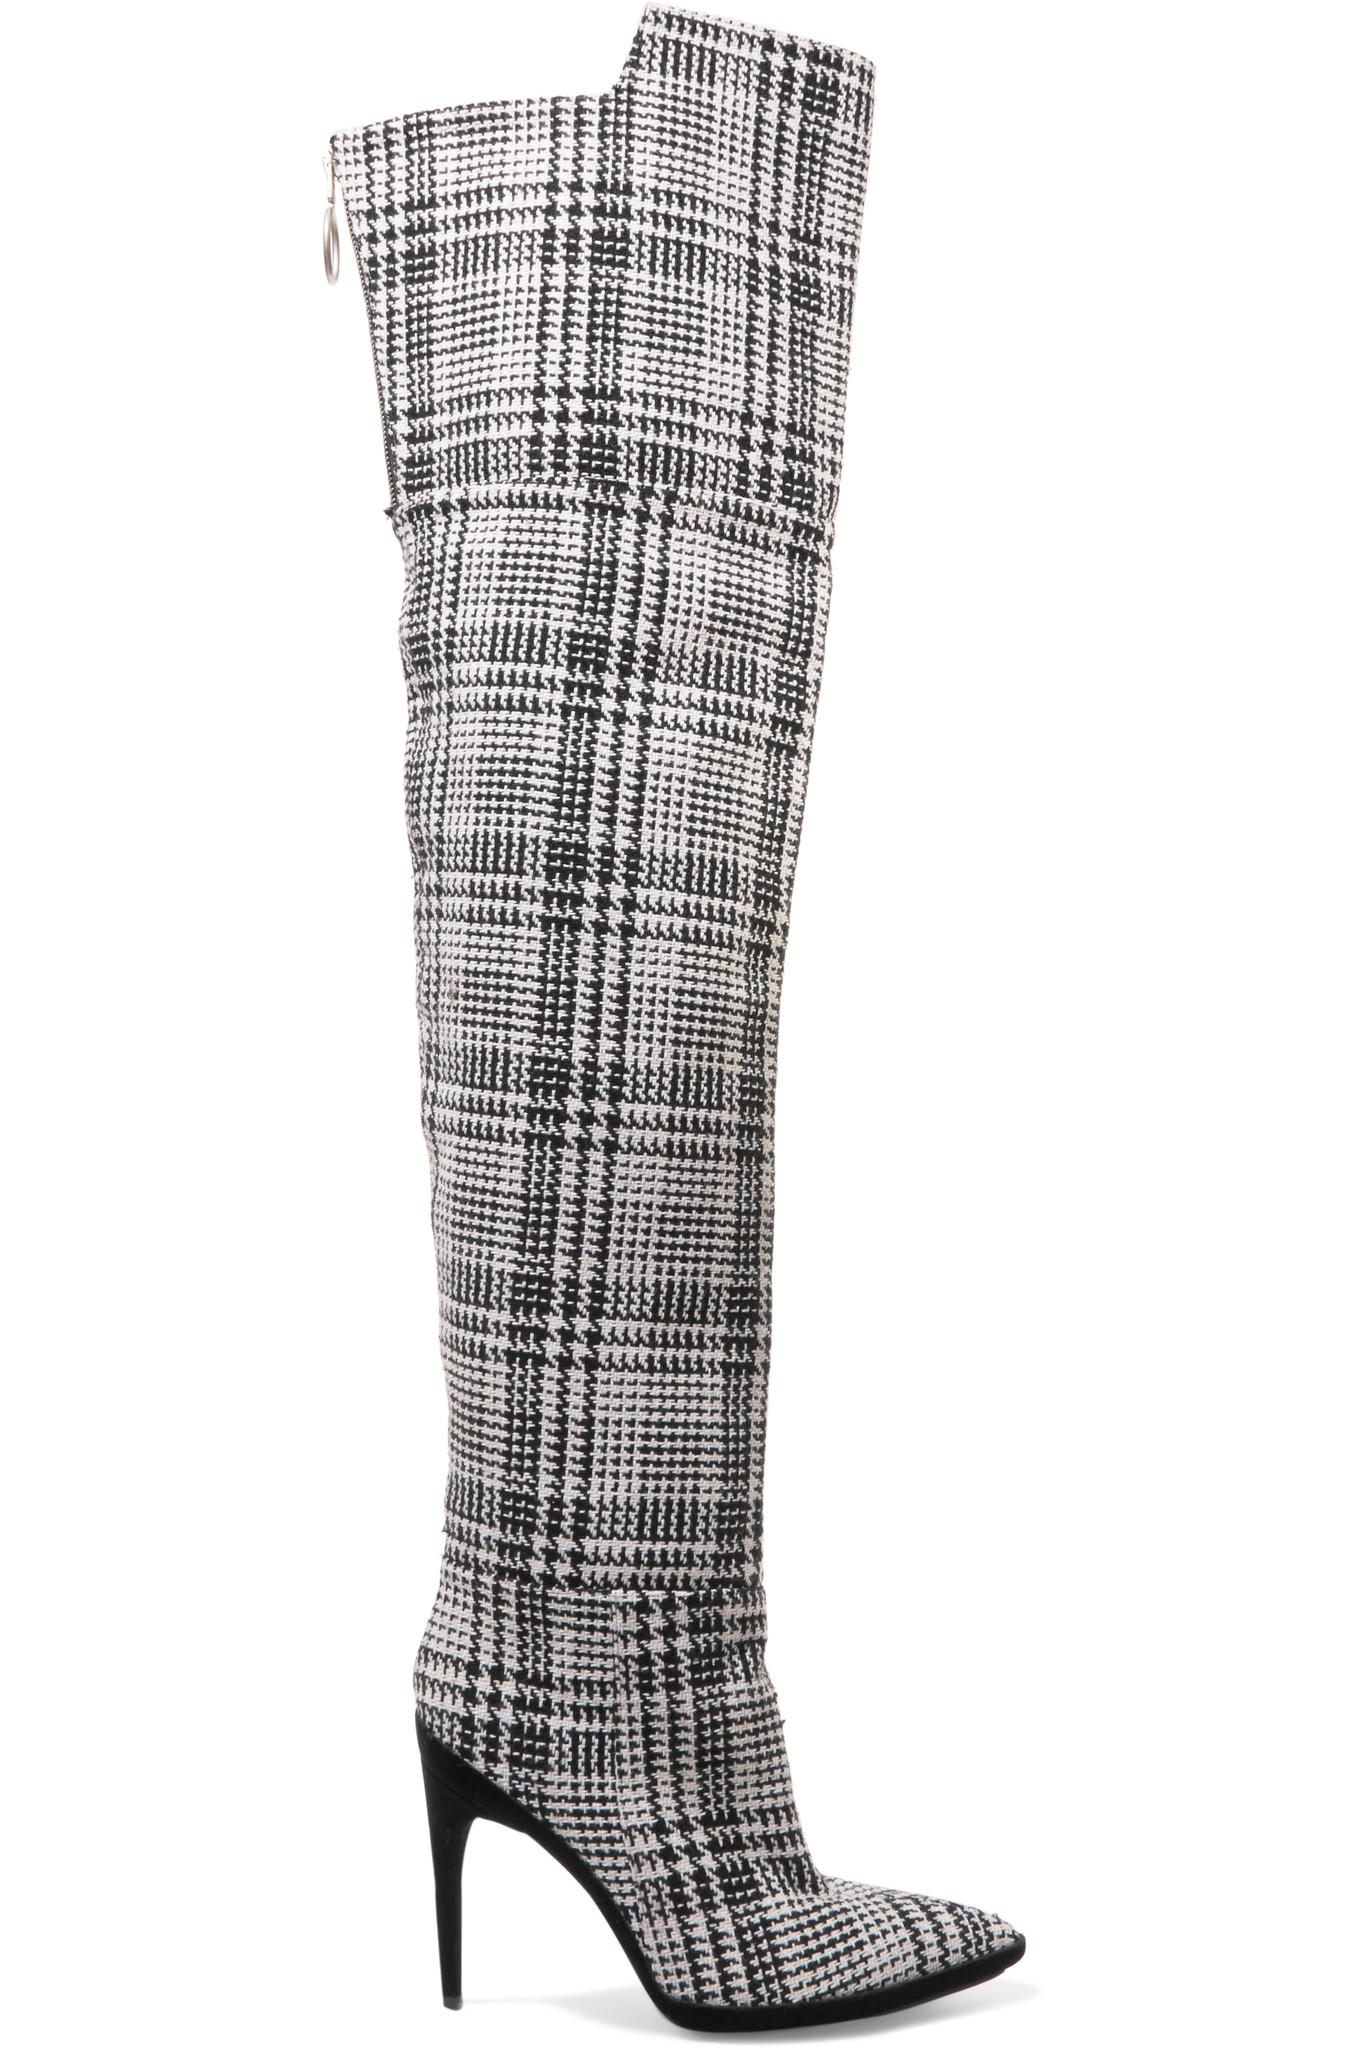 Off-White c/o Virgil Abloh 2017 Tartan Plaid Over-The-Knee Boots cheap sale very cheap best store to get sale online low shipping cheap online AwTBu09OJ